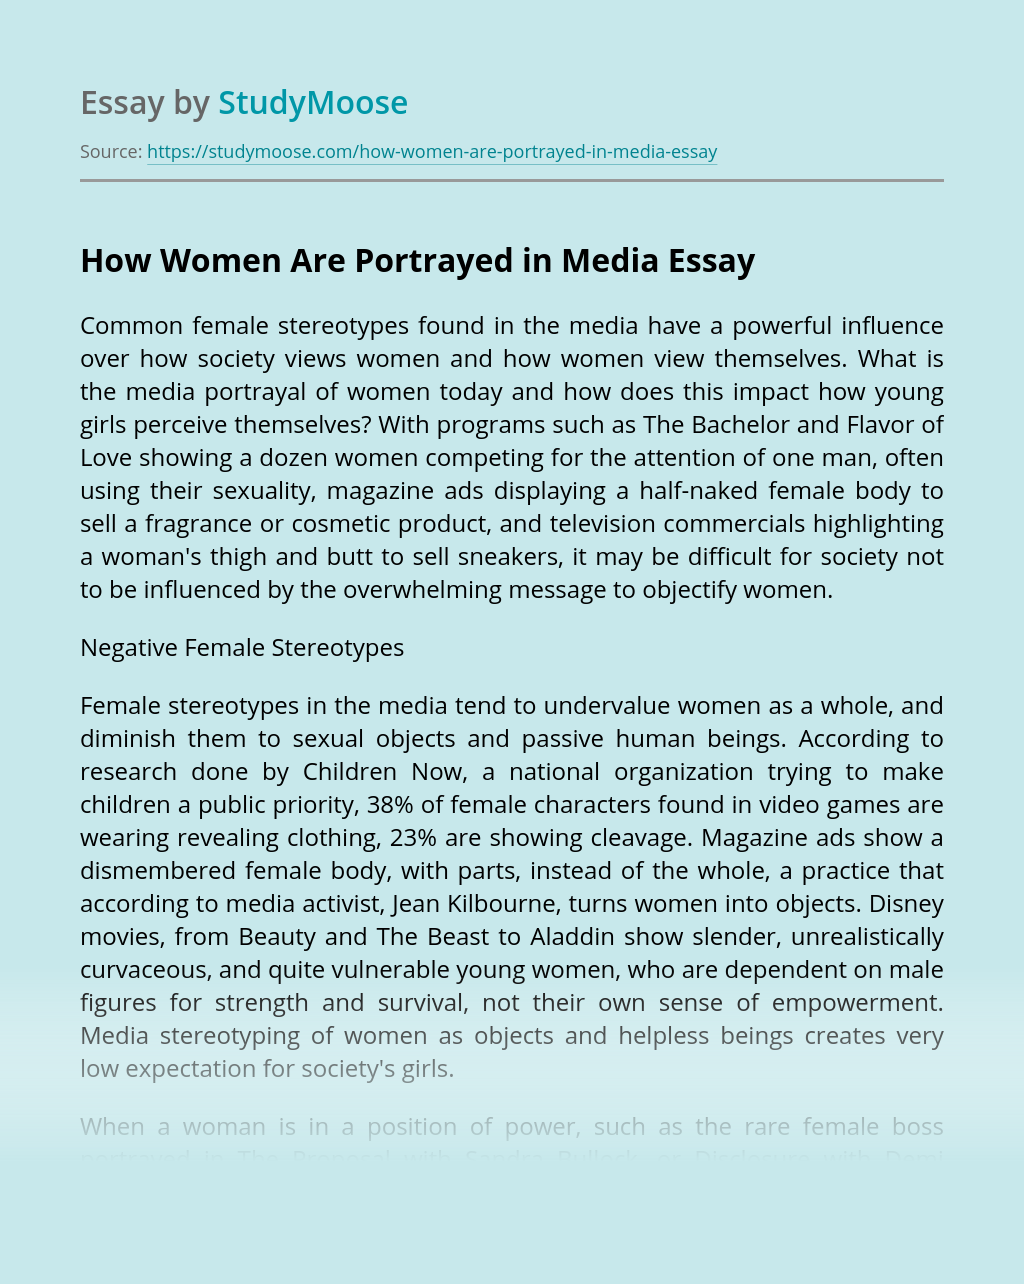 How Women Are Portrayed in Media